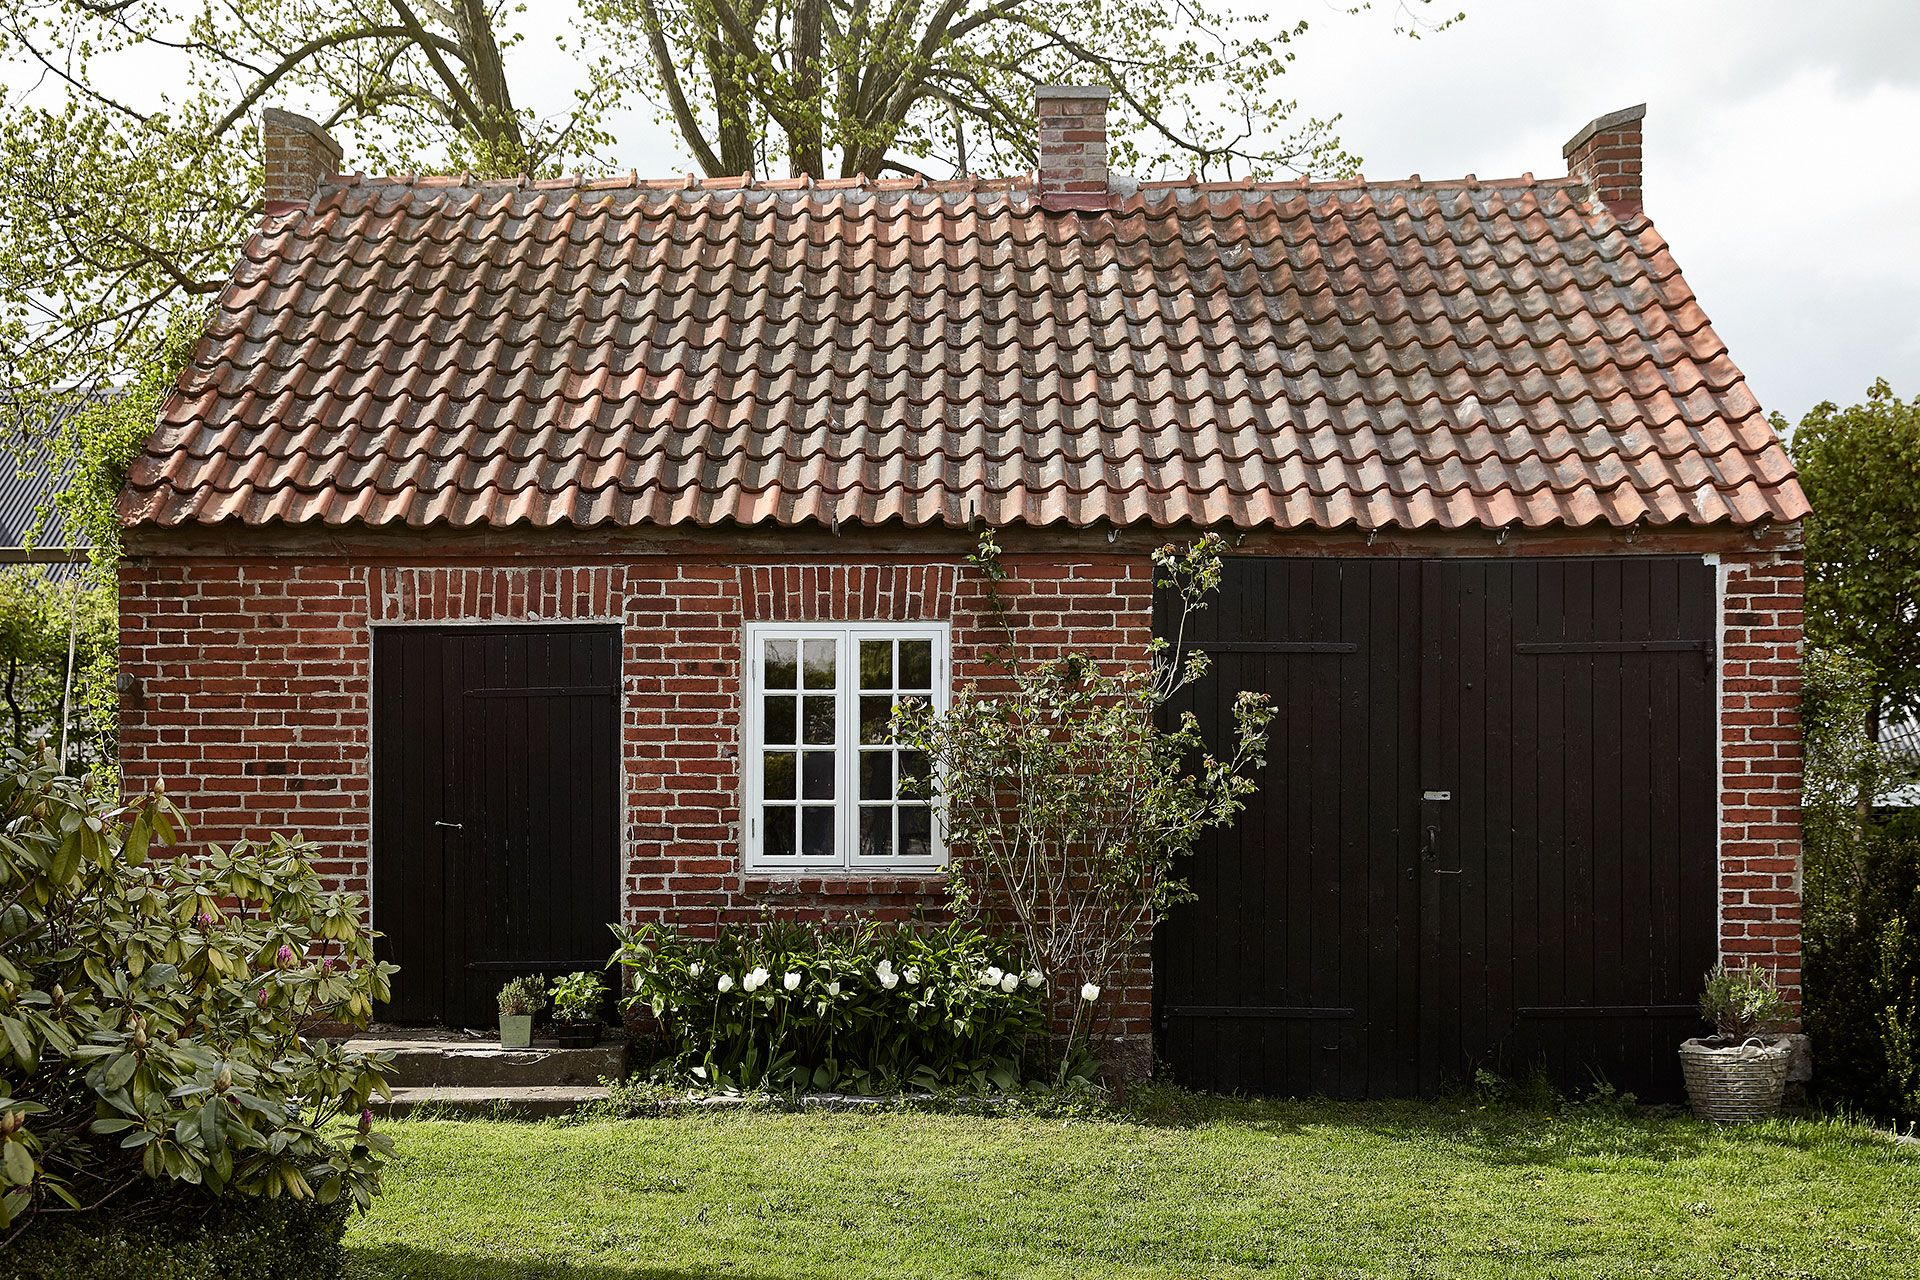 1000+ images about huset on Pinterest